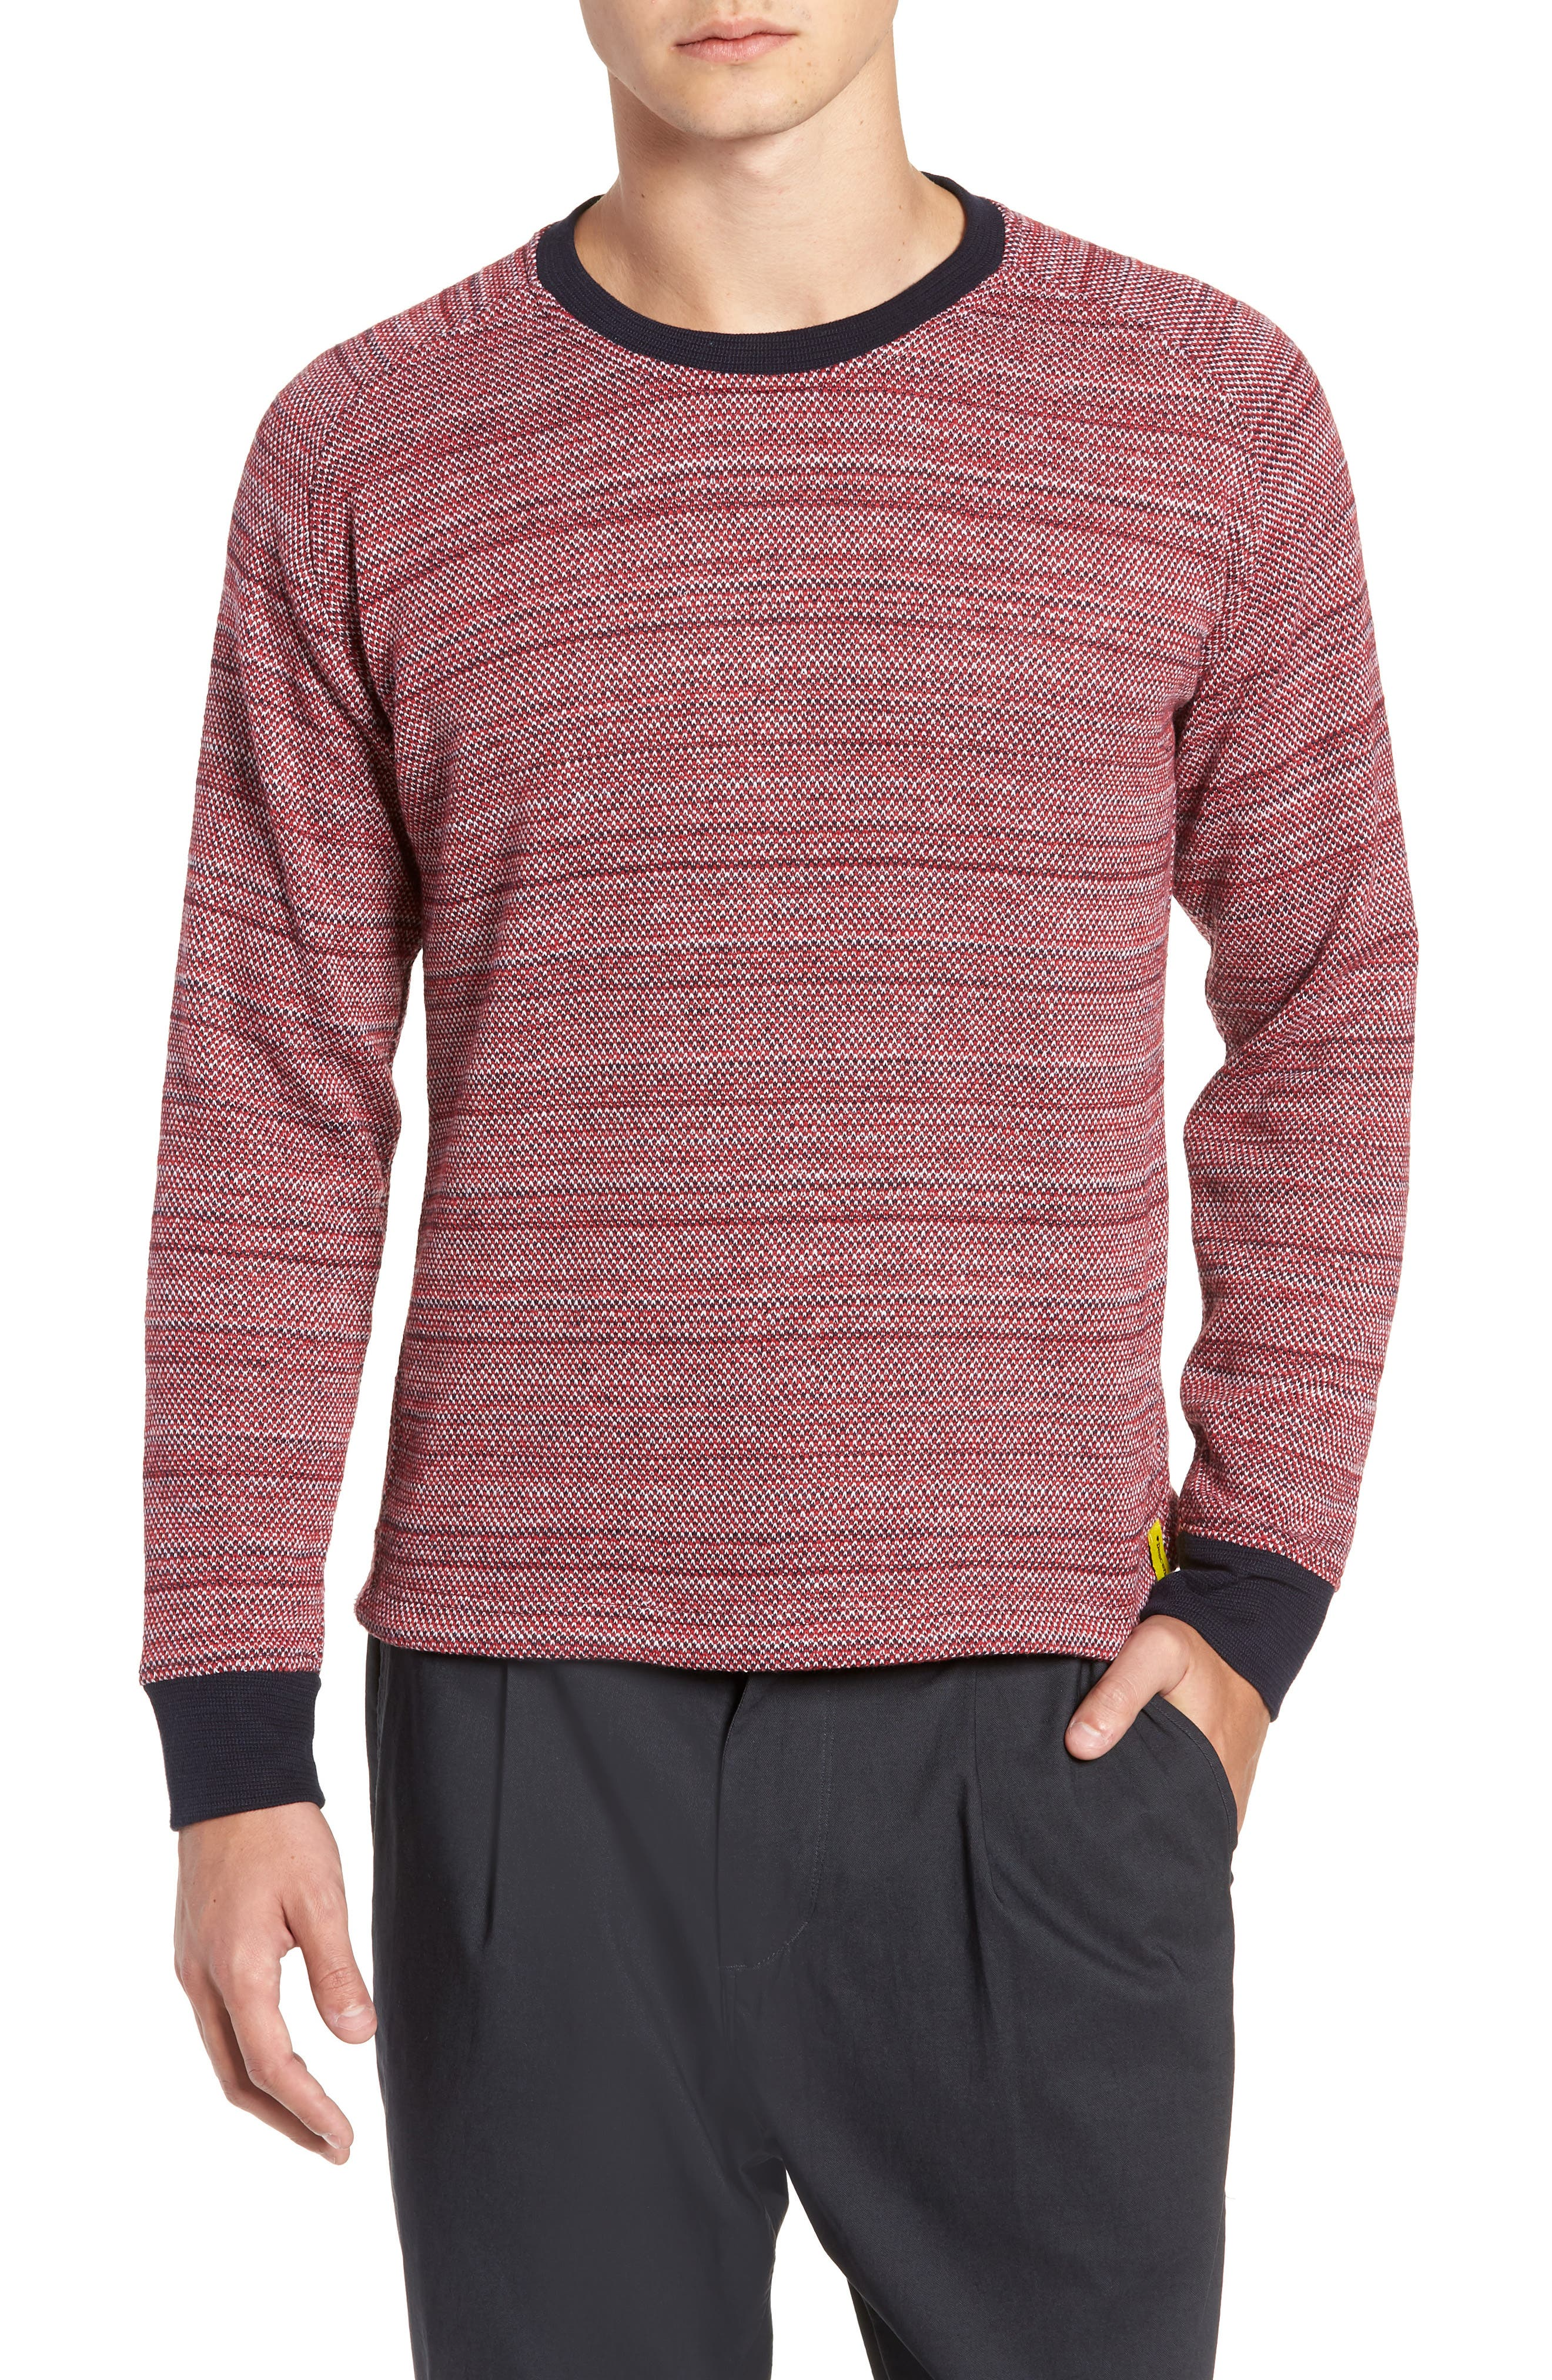 Inside Out Sweater,                         Main,                         color, RED